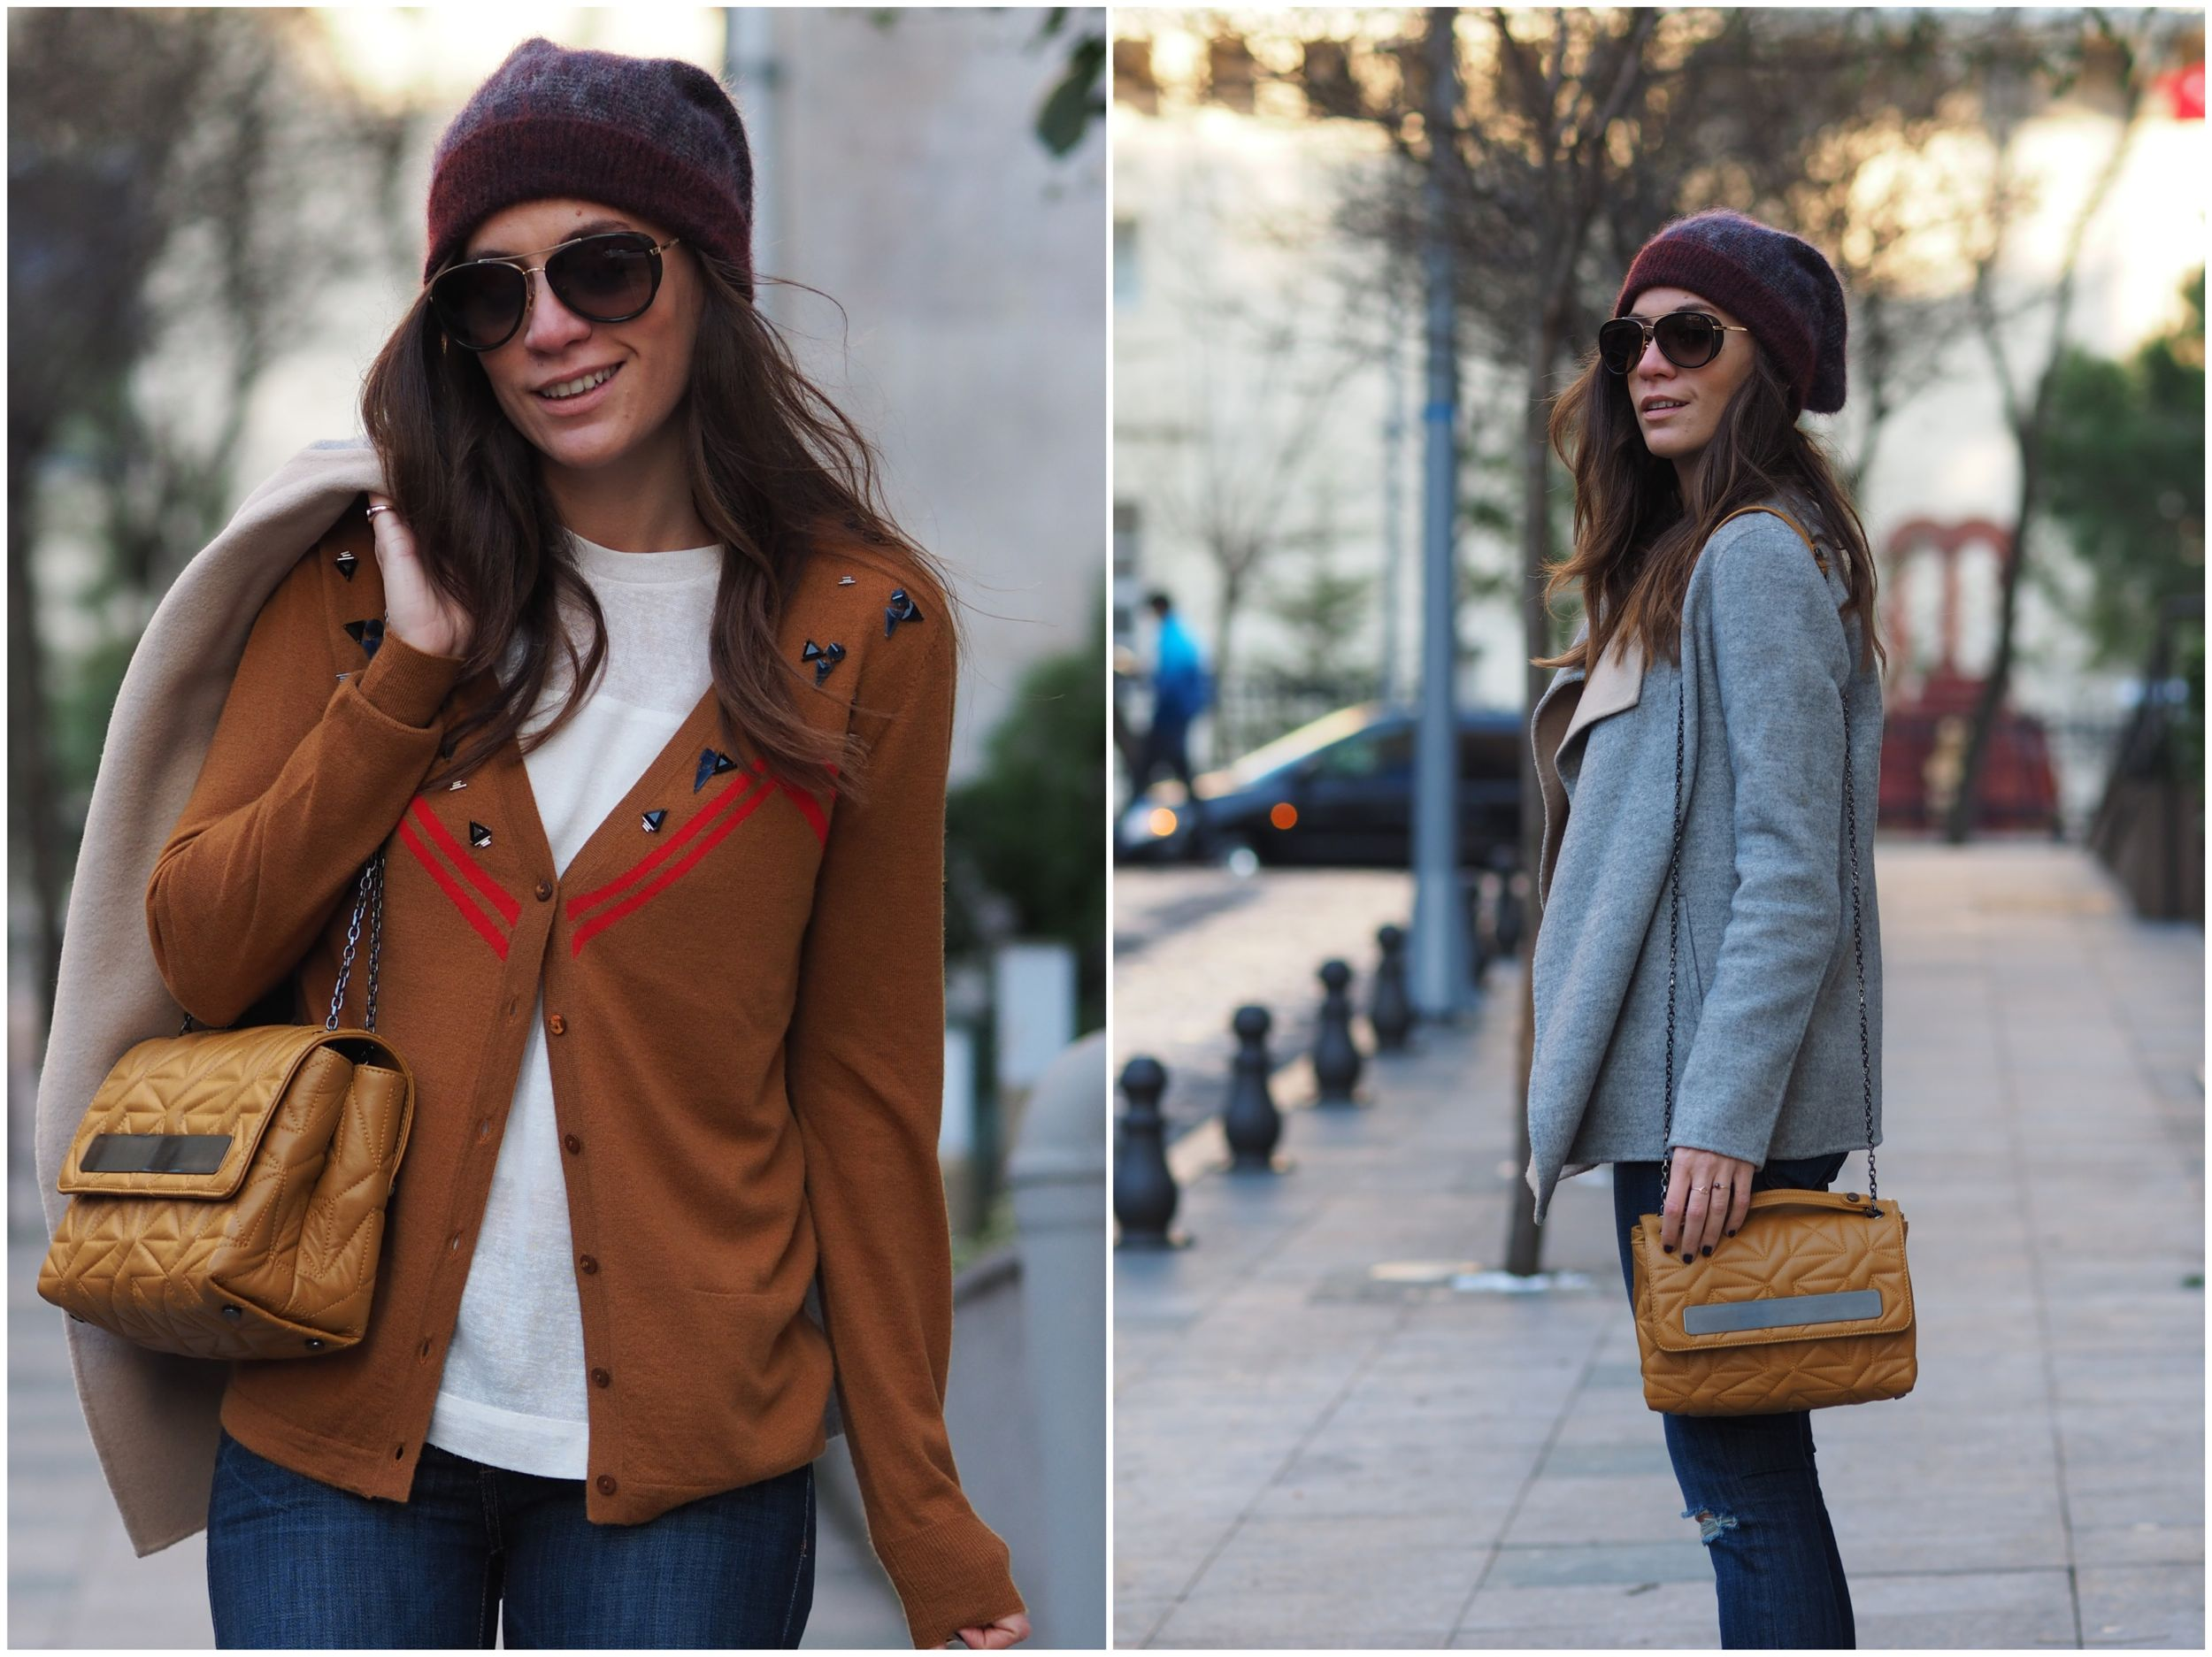 off ne giysem, street style, misela, coach, stefanel, current/elliott, massimo dutti, kenzo, cashmere in love, turkish blogger